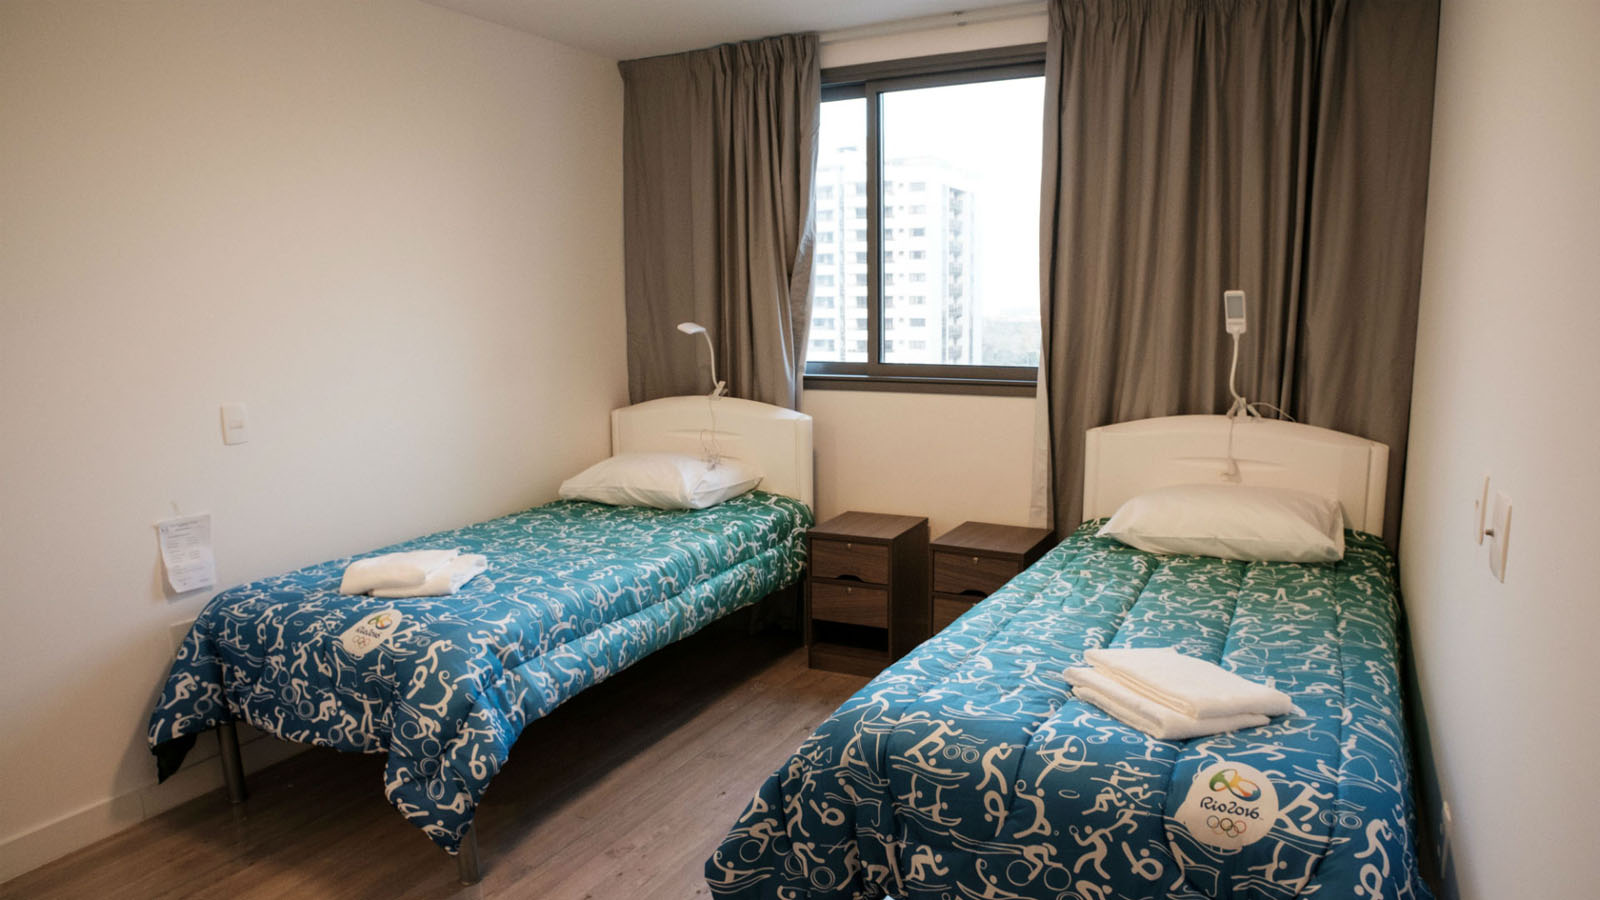 Rio Olympic Athletes Bedroom